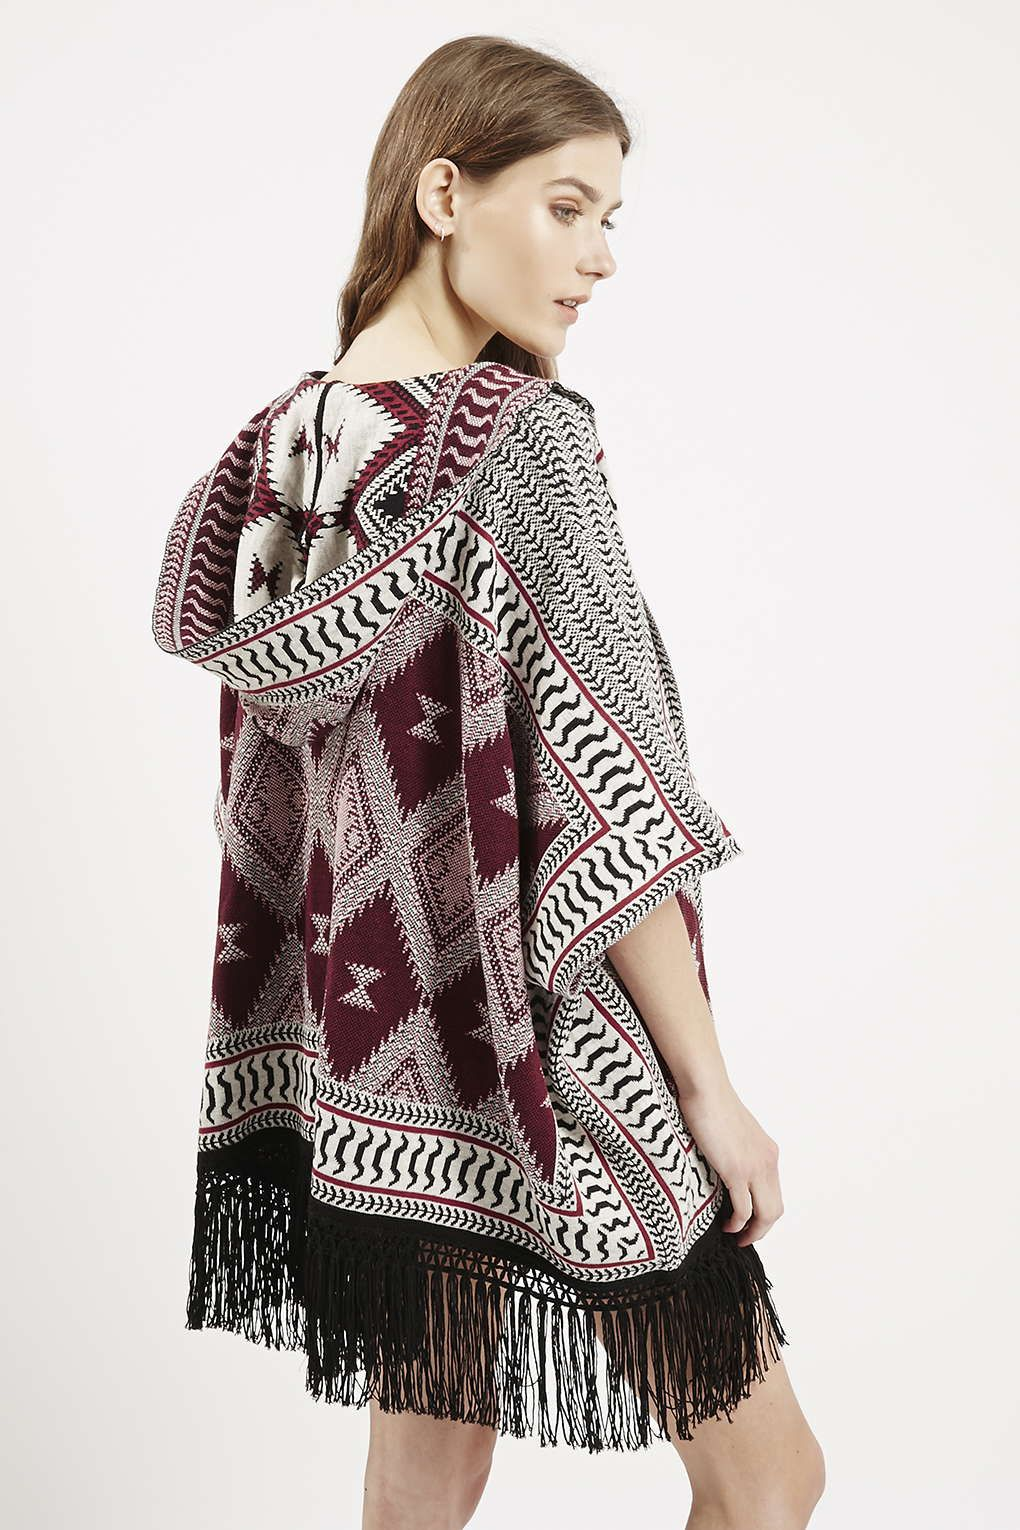 Patterned Hooded Fringe Cardigan | Topshop, Tribal fashion and Clothes